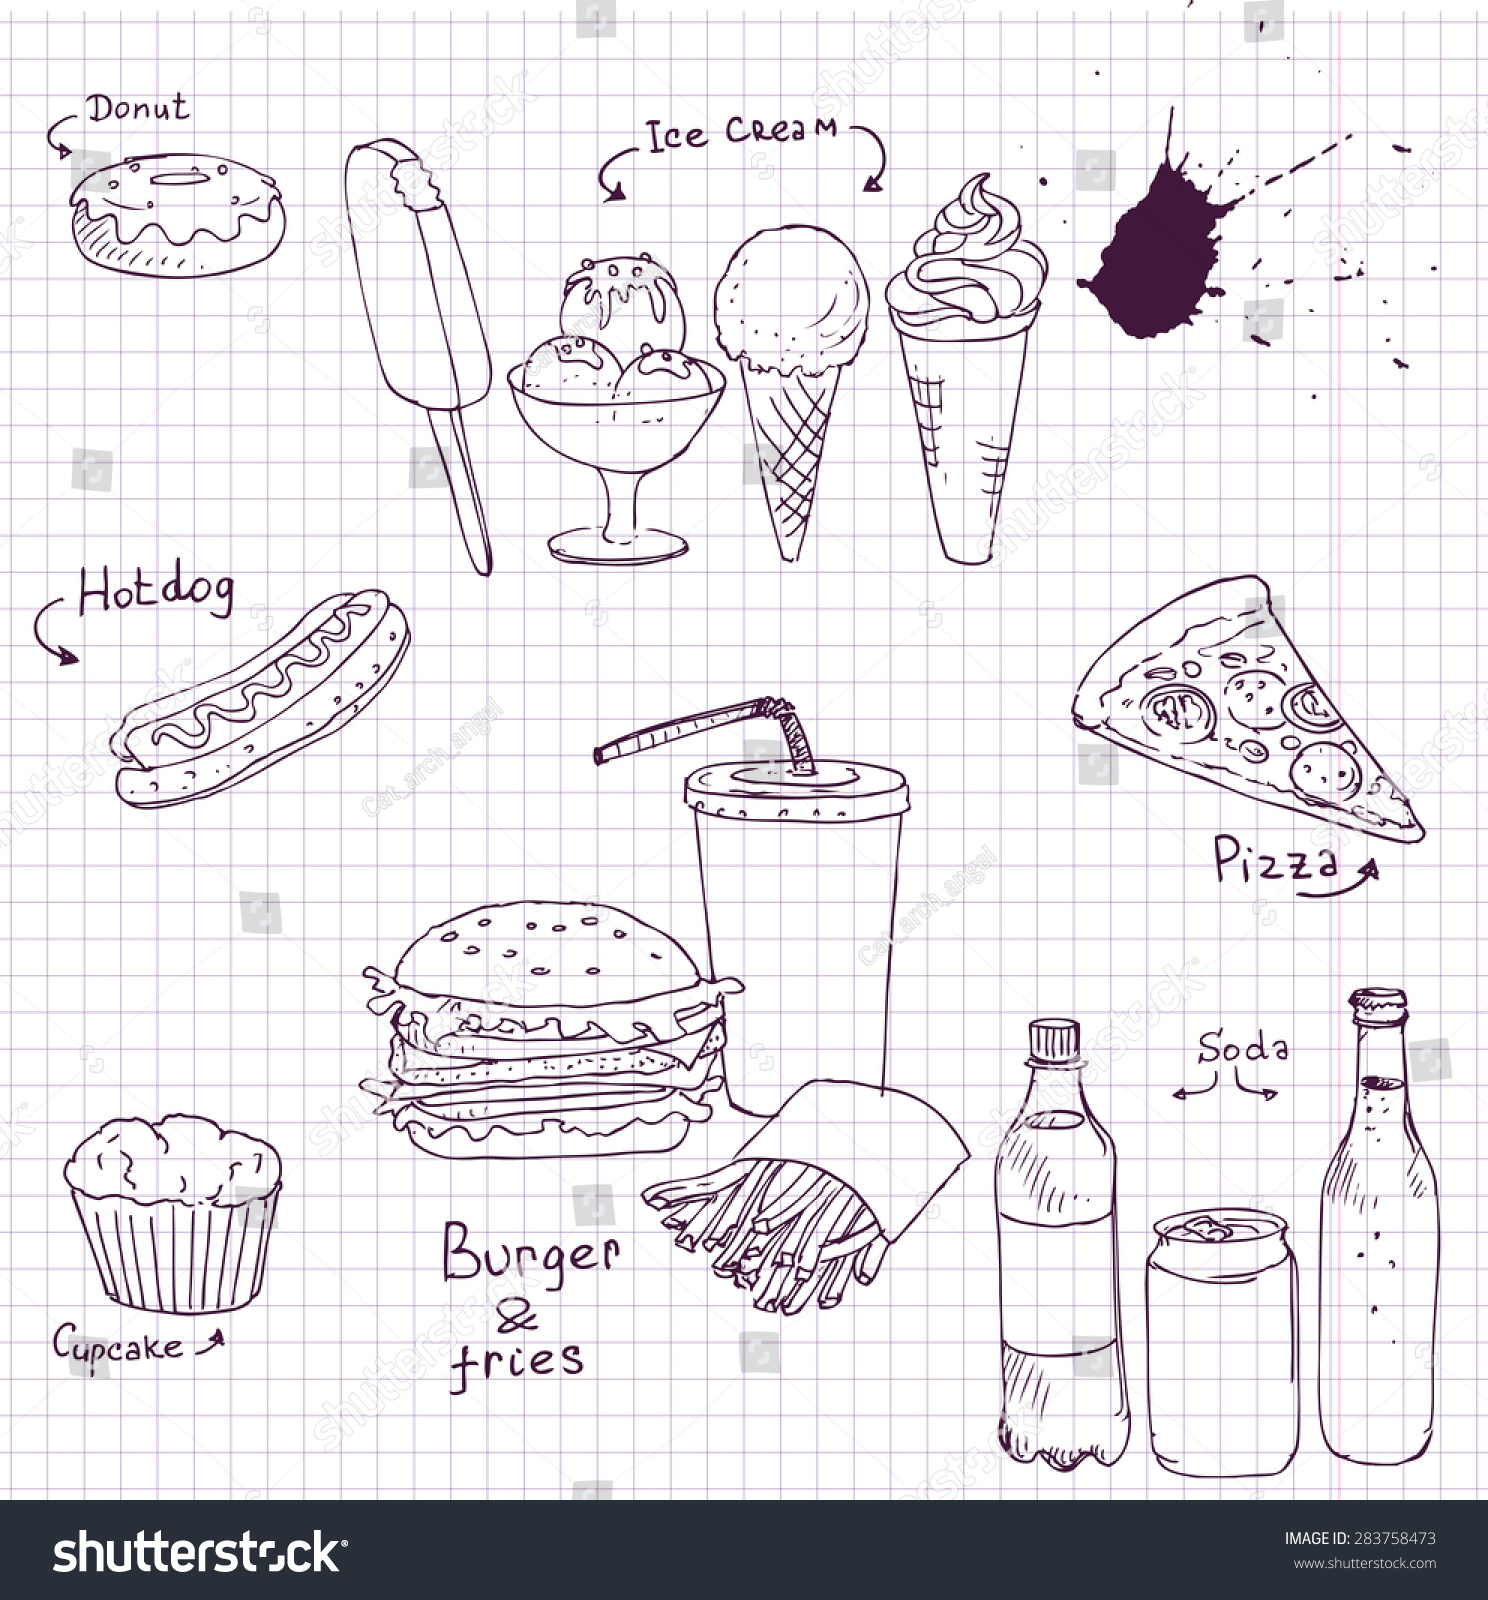 vector set of fastfood drawing by ink pen at paper from a school notebook junk